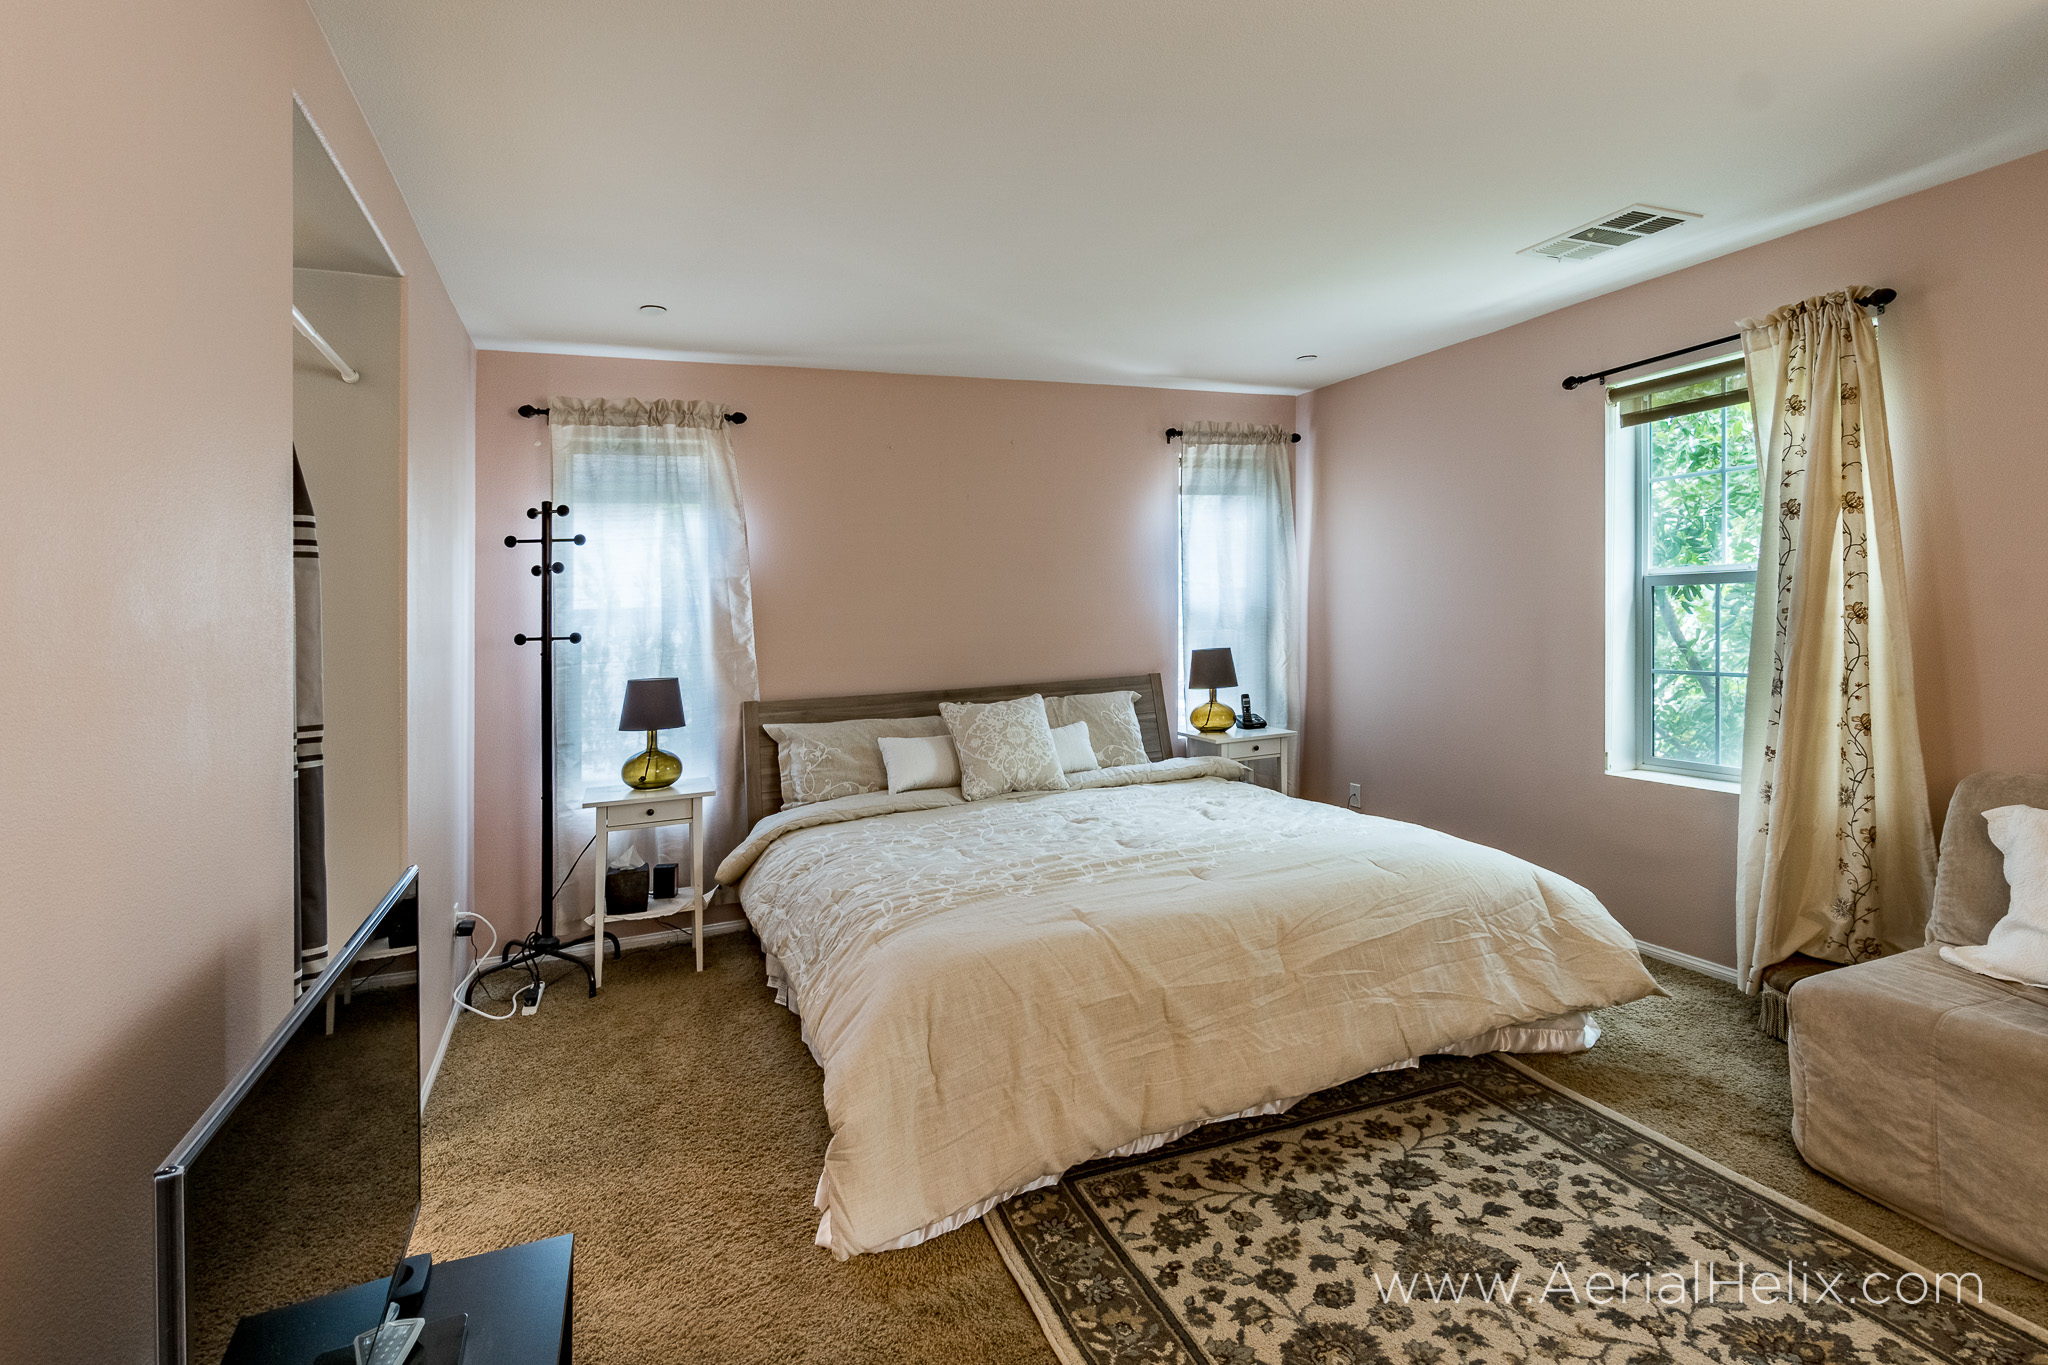 HELIX Morhouse Ave - Real-estate-photographer-30.jpg